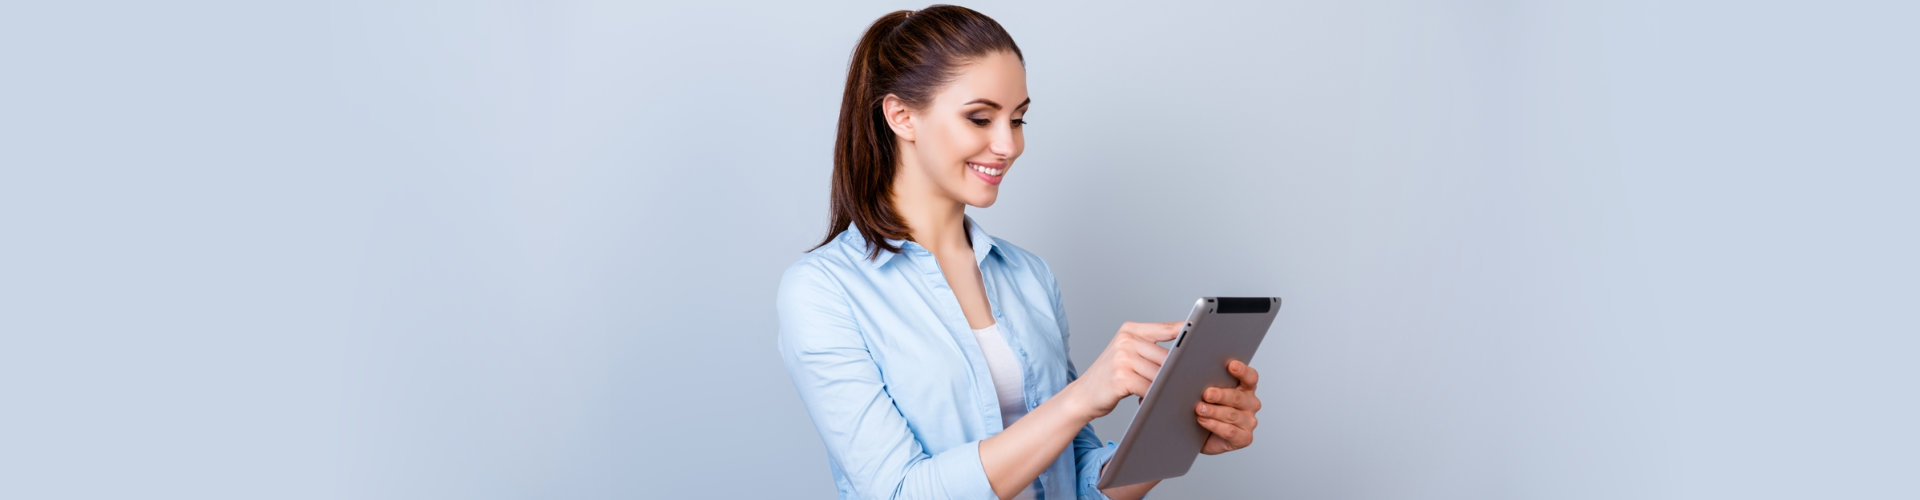 a lady using a tablet